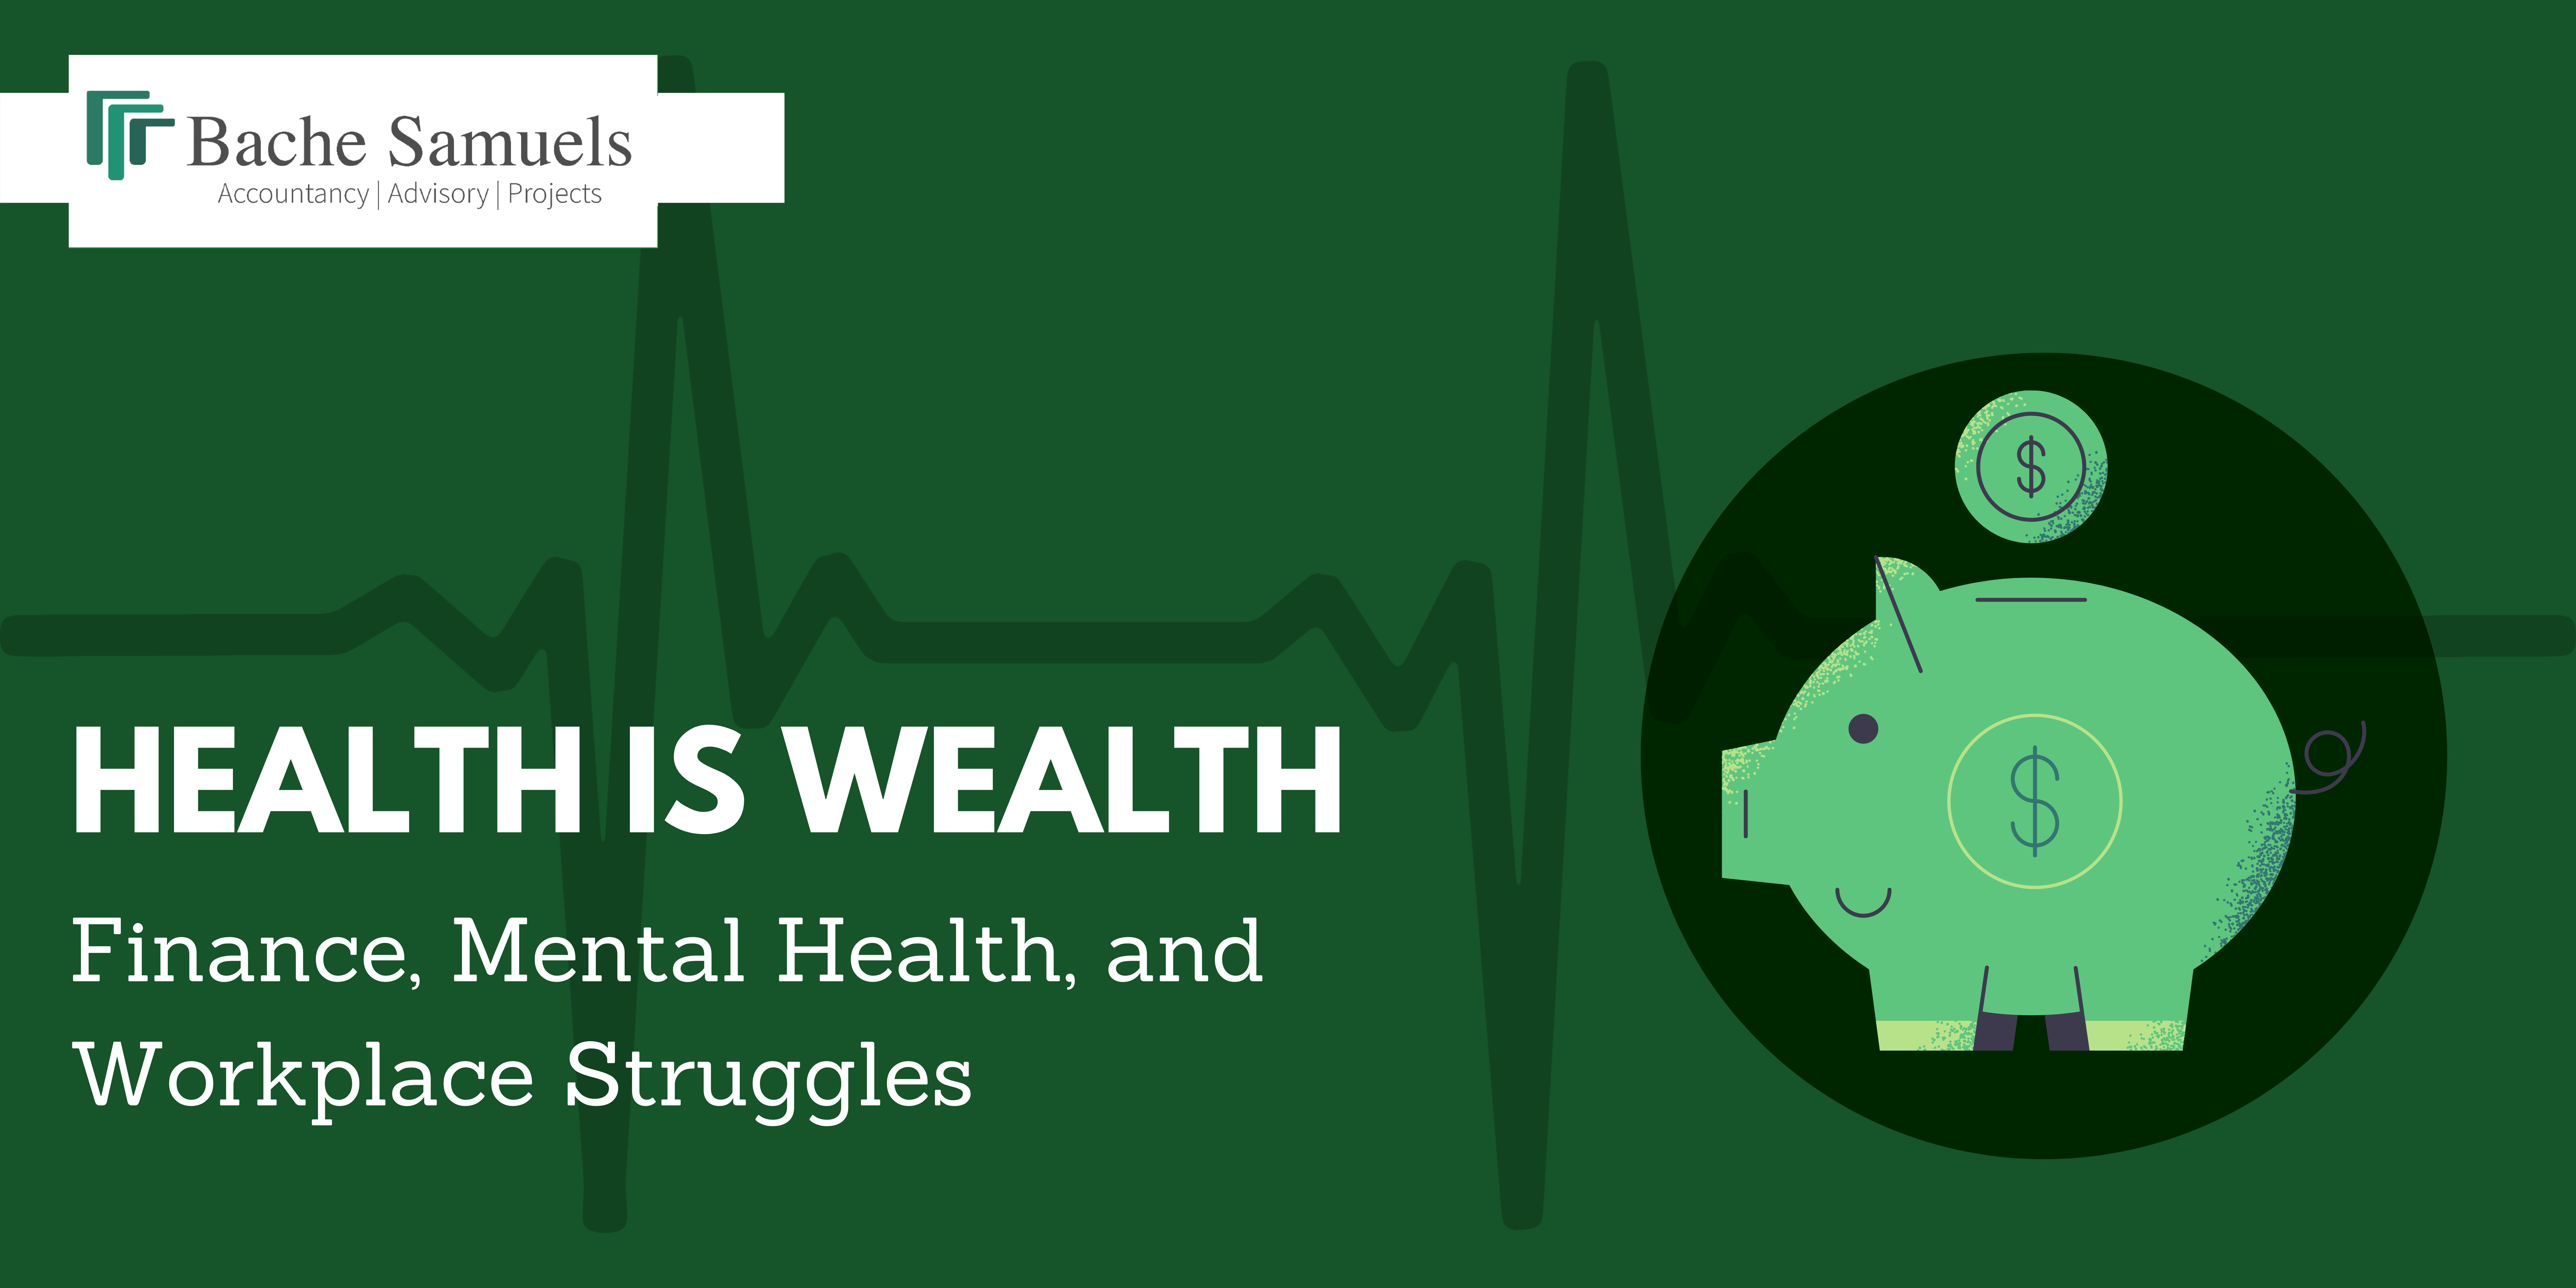 Health is Wealth: Finance, Mental Health, and Workplace Struggles